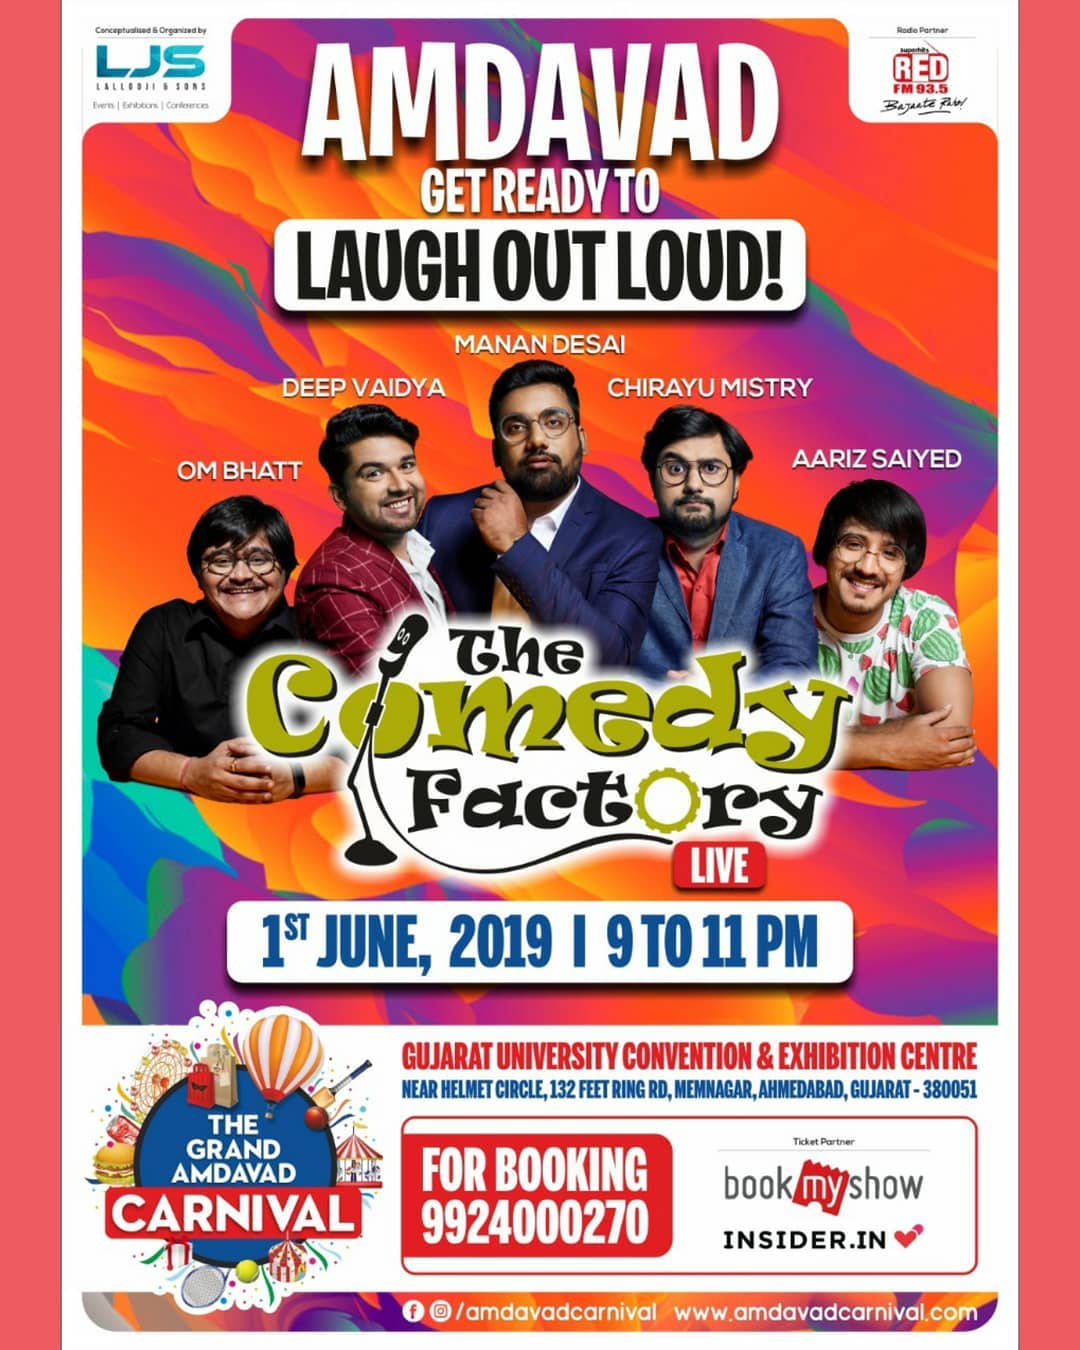 Ahmedabad on 1st June. Tickets on Insider.in and also on Bookmyshow. @amdavadcarnival